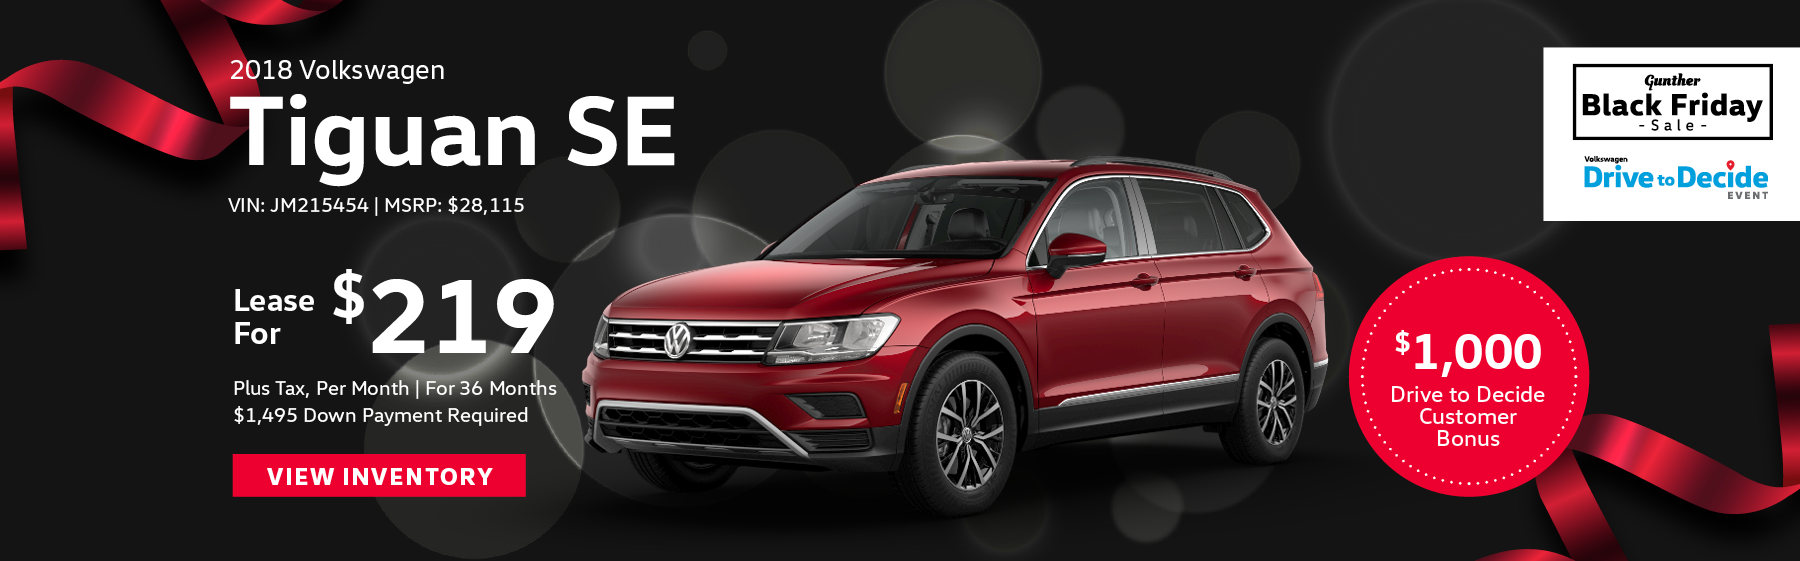 Lease the 2018 Volkswagen Tiguan SE for $219 plus tax for 36 months. $1,495 Down payment required.